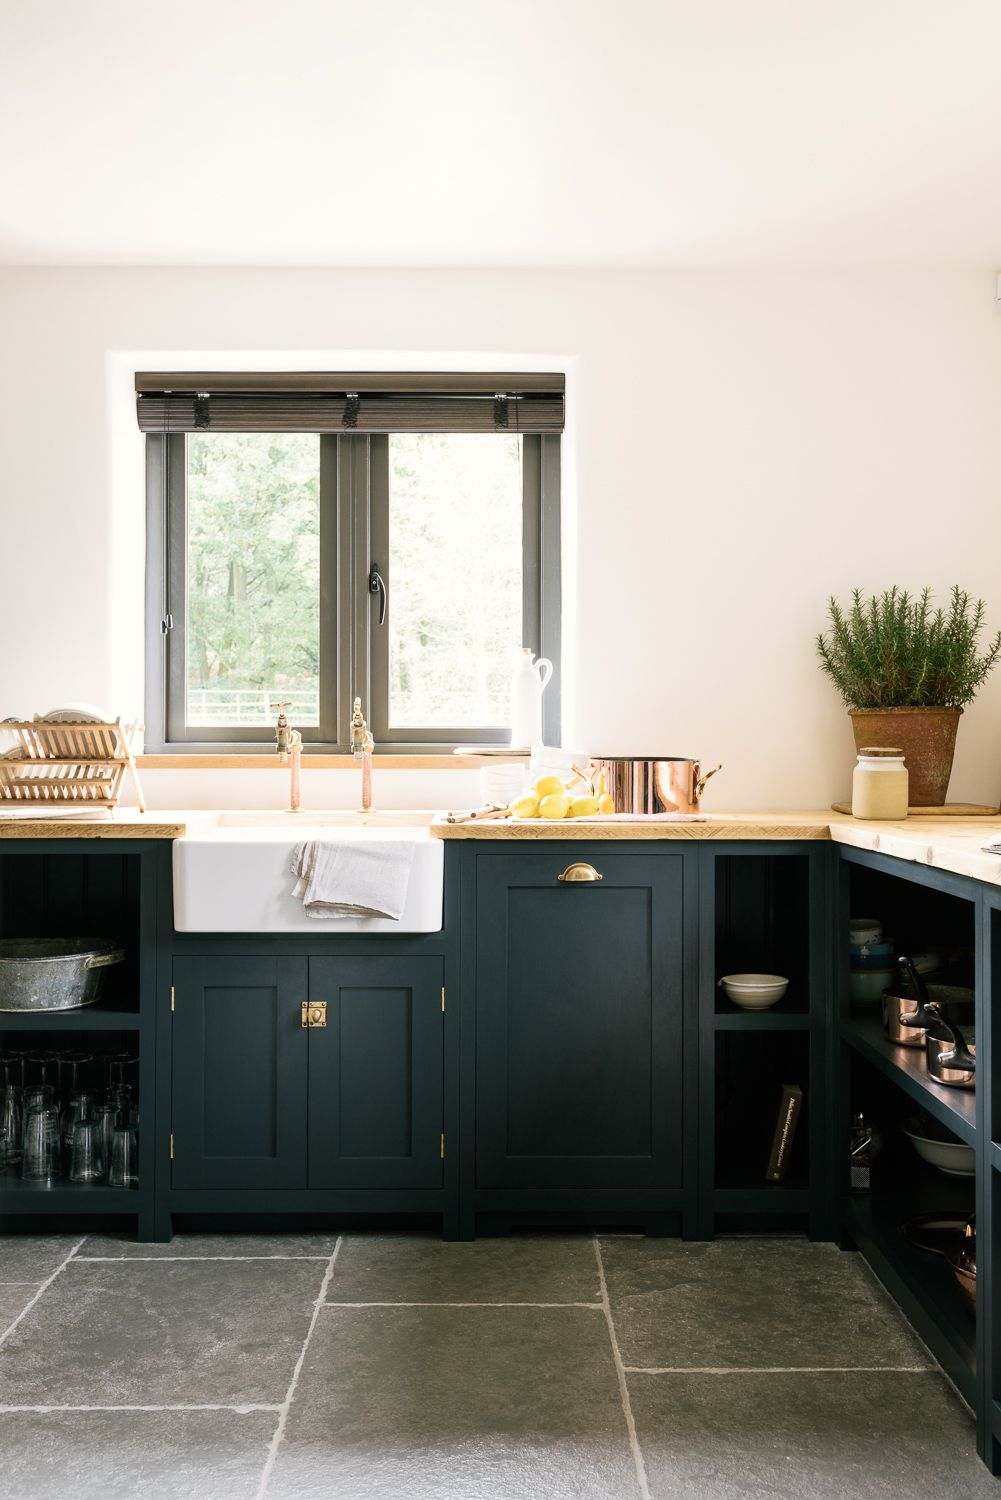 A Farmhouse Sinks, Brass Taps And Dark Blue Shaker Cupboards In DeVOLu0027s  Leicestershire Kitchen In The Woods